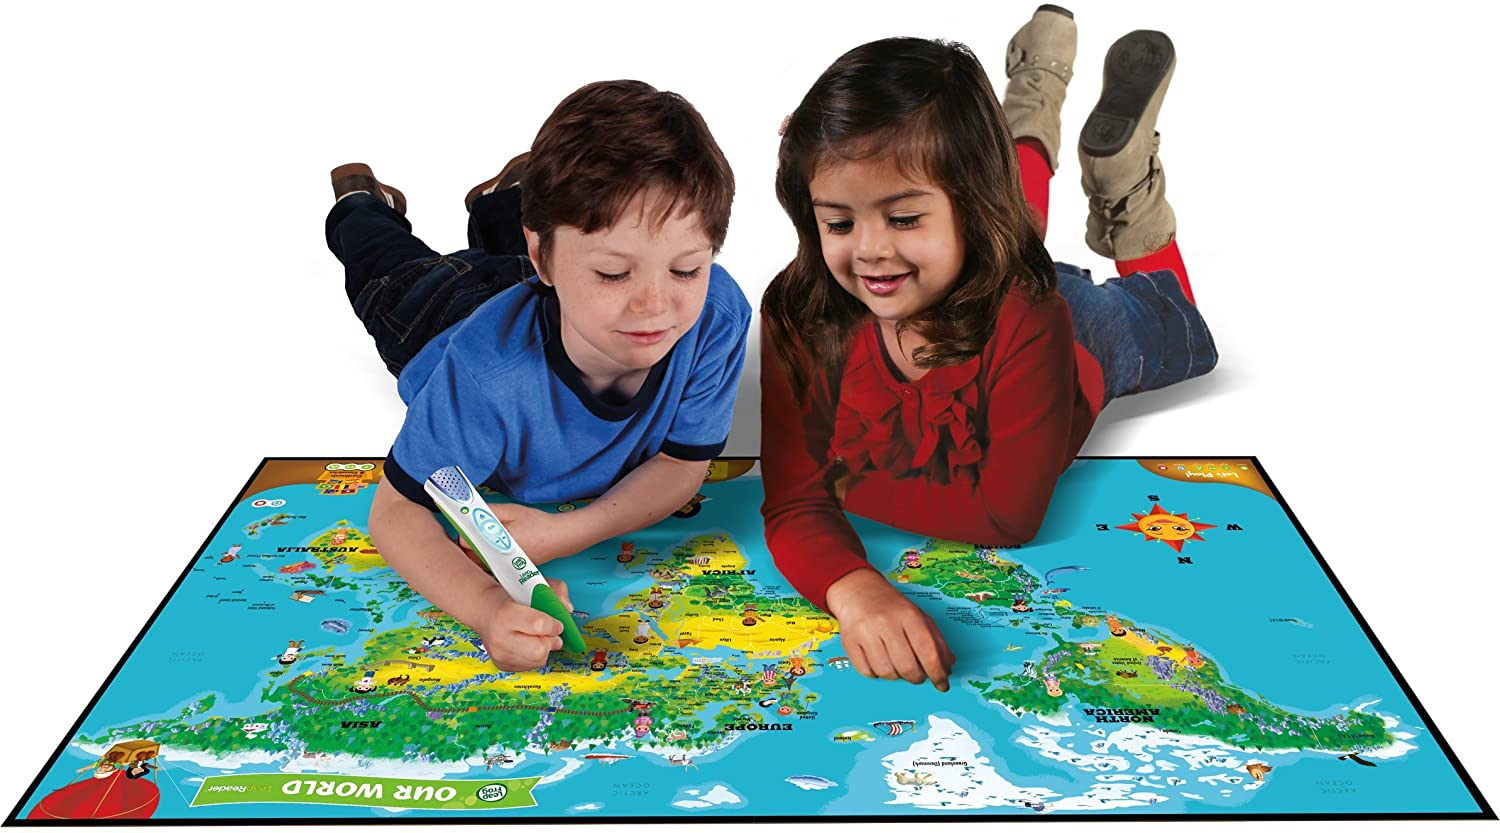 Amazon leapfrog leapreader interactive world map works with amazon leapfrog leapreader interactive world map works with tag toys games gumiabroncs Gallery